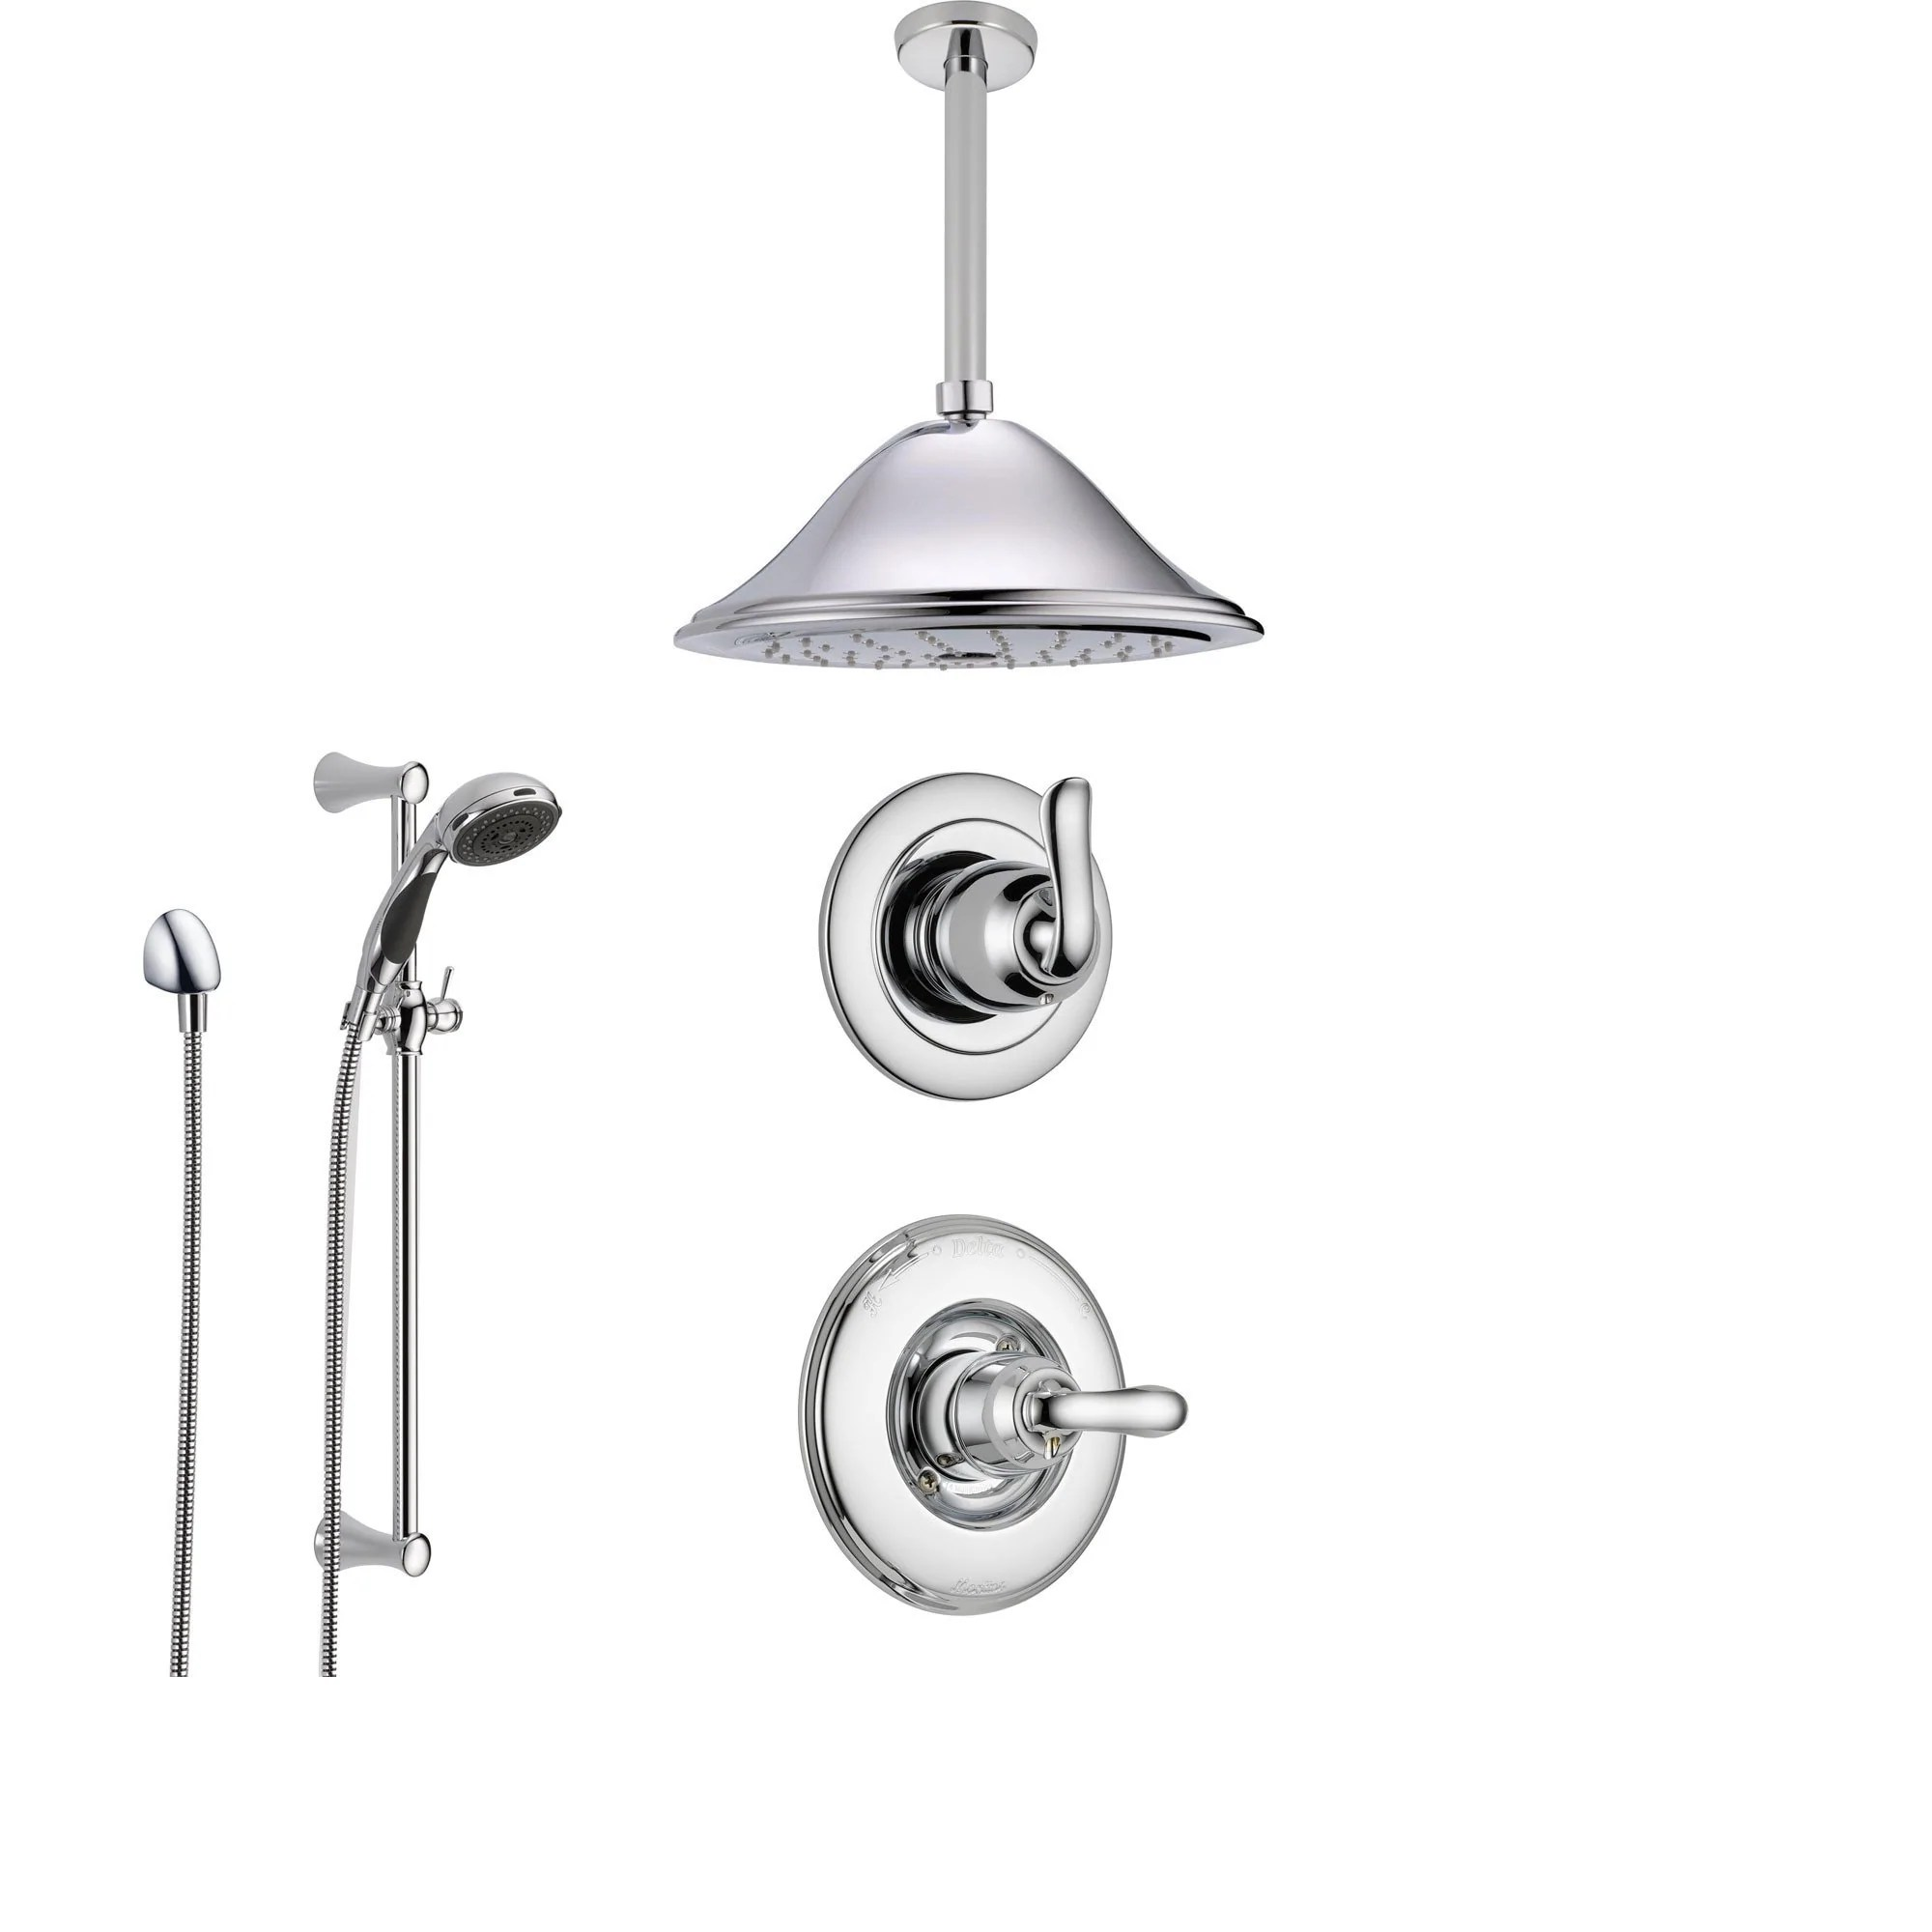 Delta Shower Diverter Delta Linden Chrome Shower System With Normal Shower Handle 3 Setting Diverter Large Ceiling Mount Rain Showerhead And Handheld Shower Ss149482